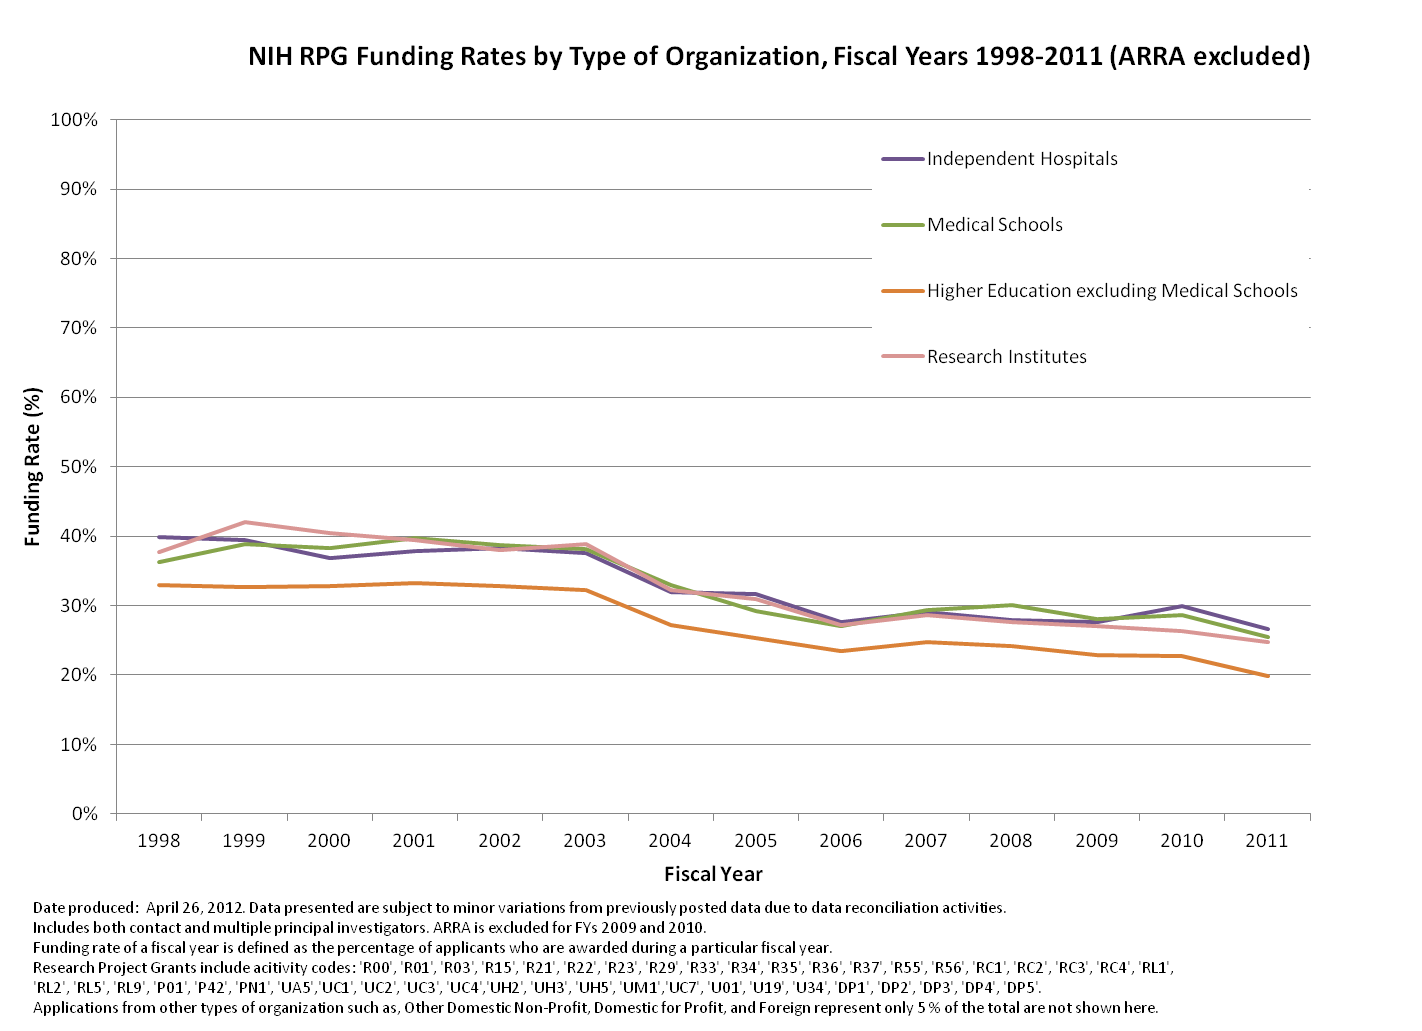 NIH RPG Funding Rates by Type of Organization, Fiscal Years 1998-2011 (ARRA excluded)